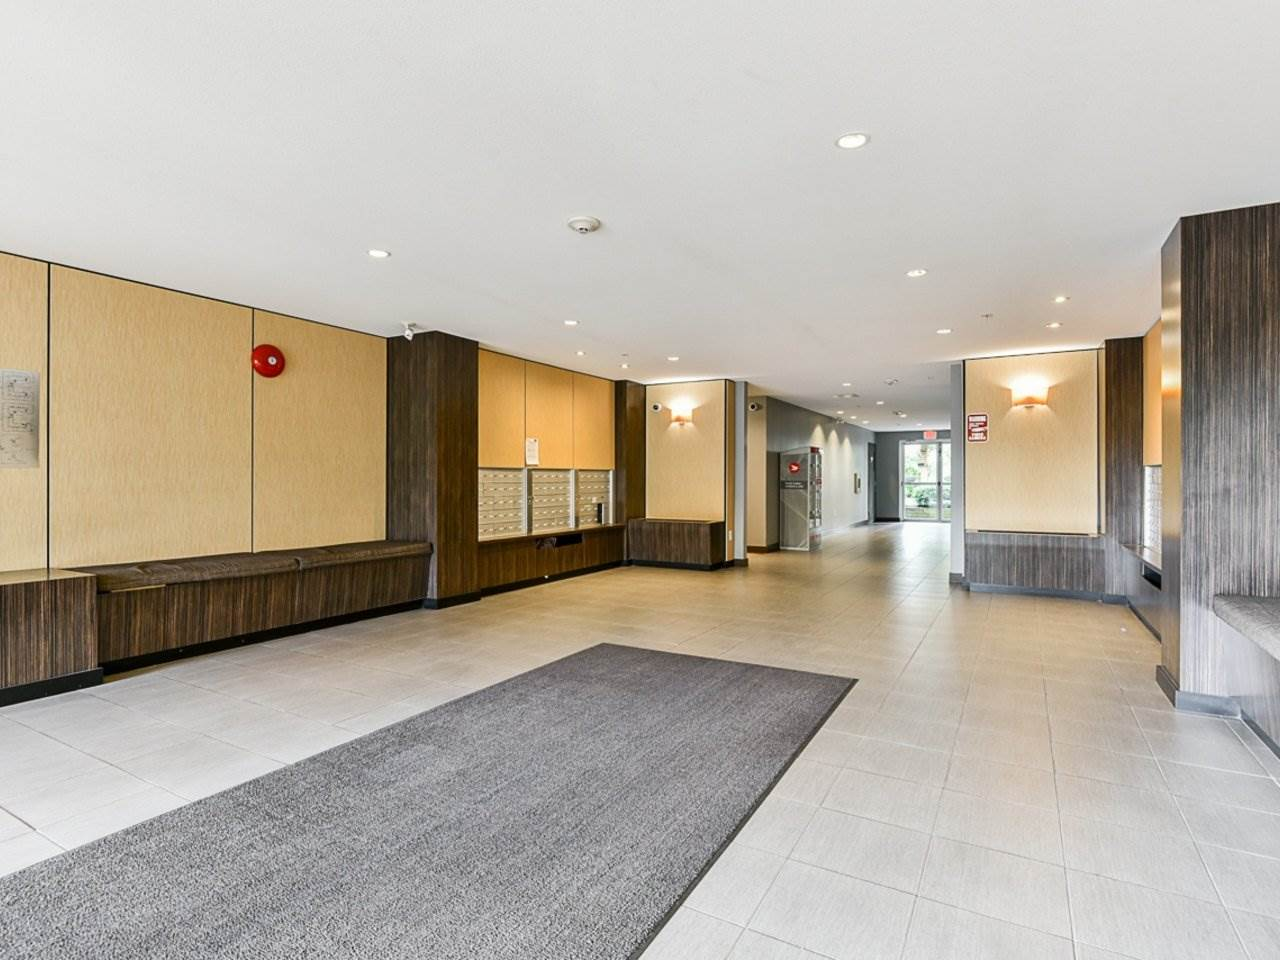 329 13321 102A AVENUE - Whalley Apartment/Condo for sale, 1 Bedroom (R2508611) - #6